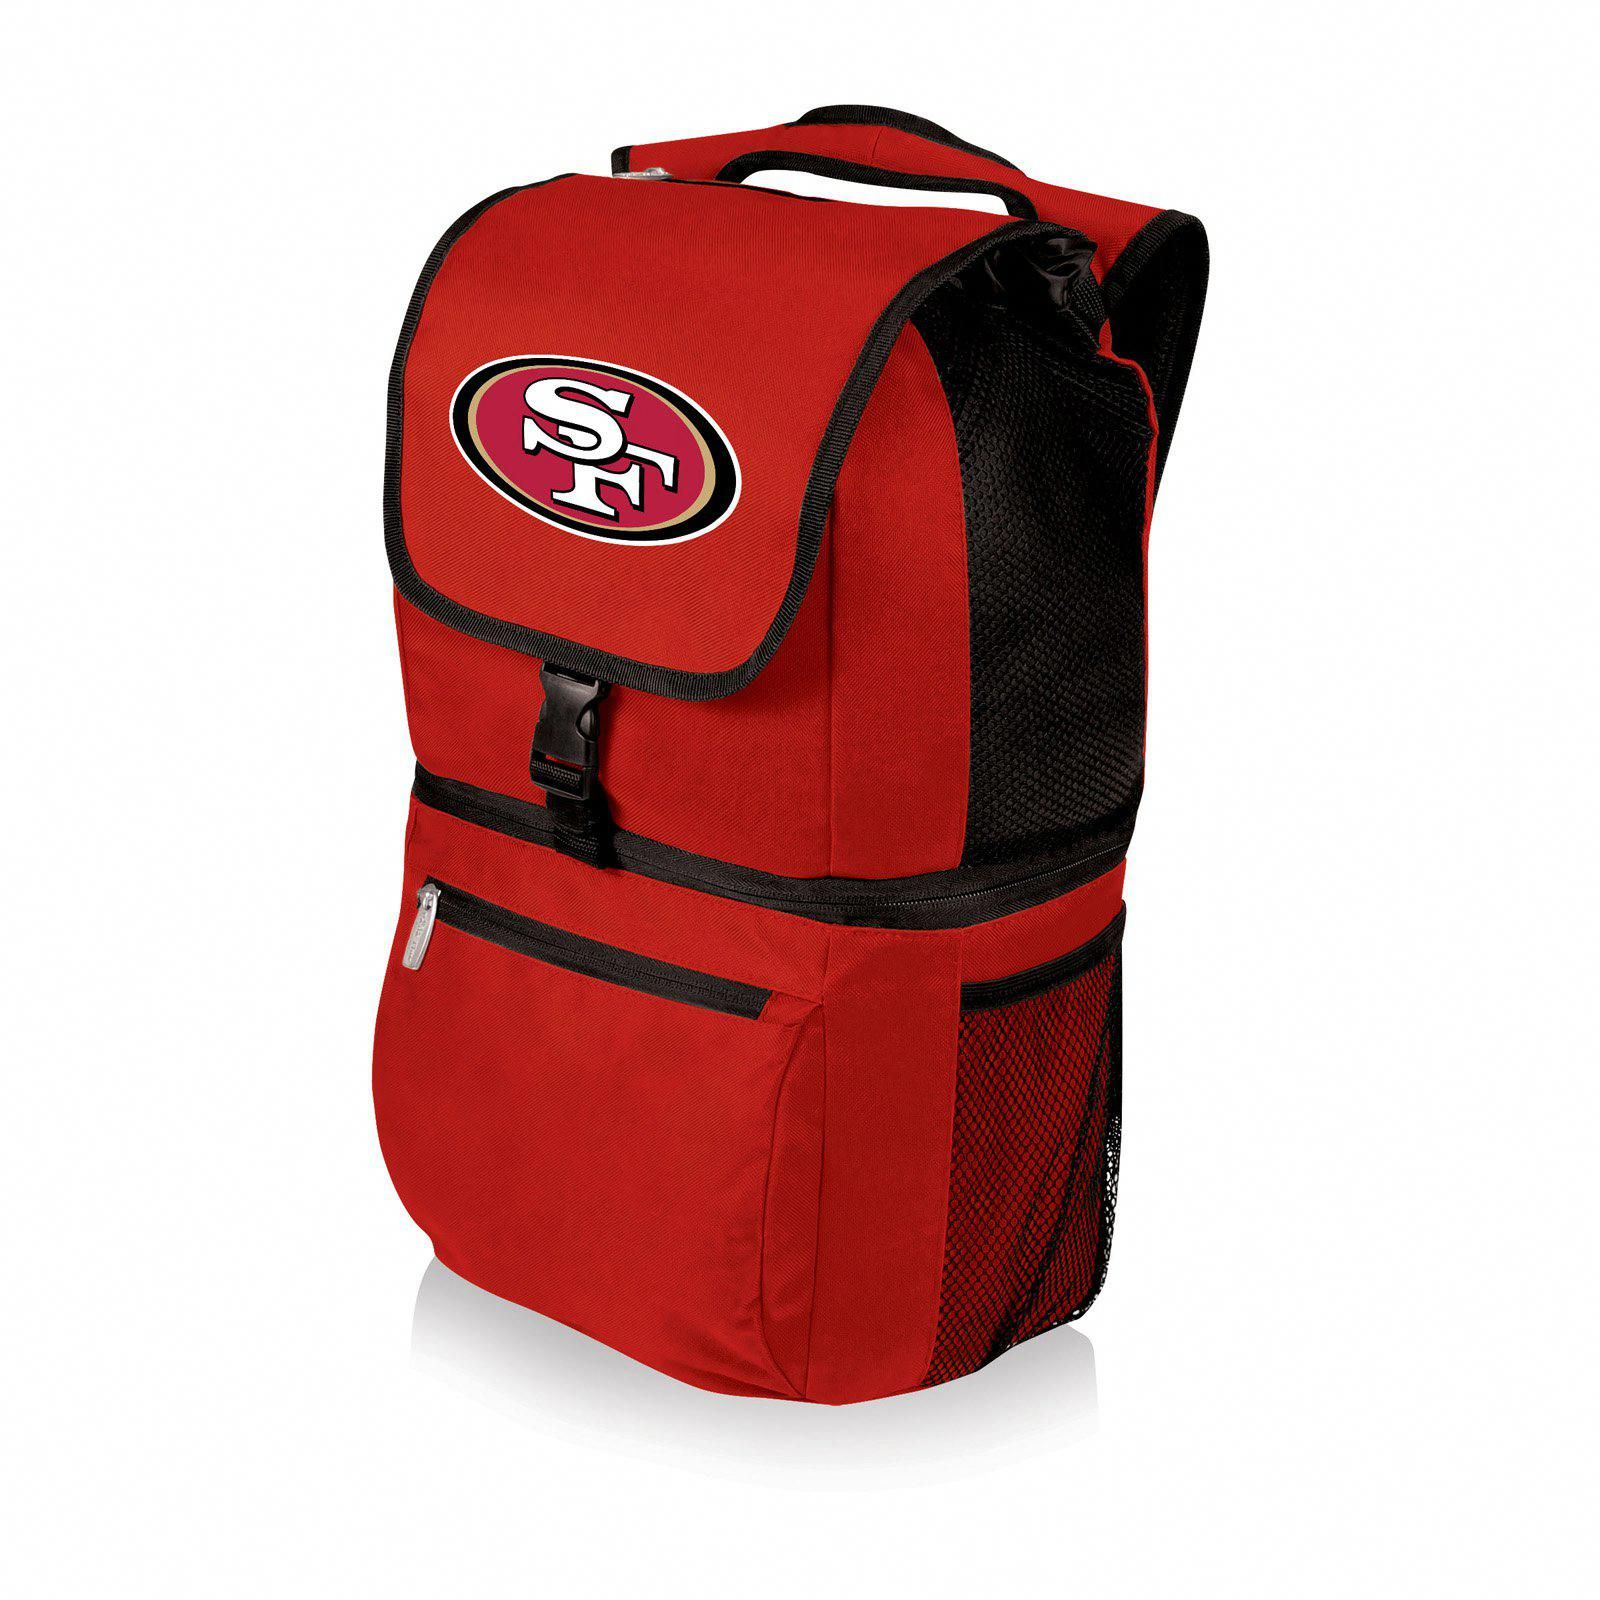 Picnic Time Nfl Zuma Cooler Backpack In 2020 Picnic Backpack Insulated Backpack Cool Backpacks